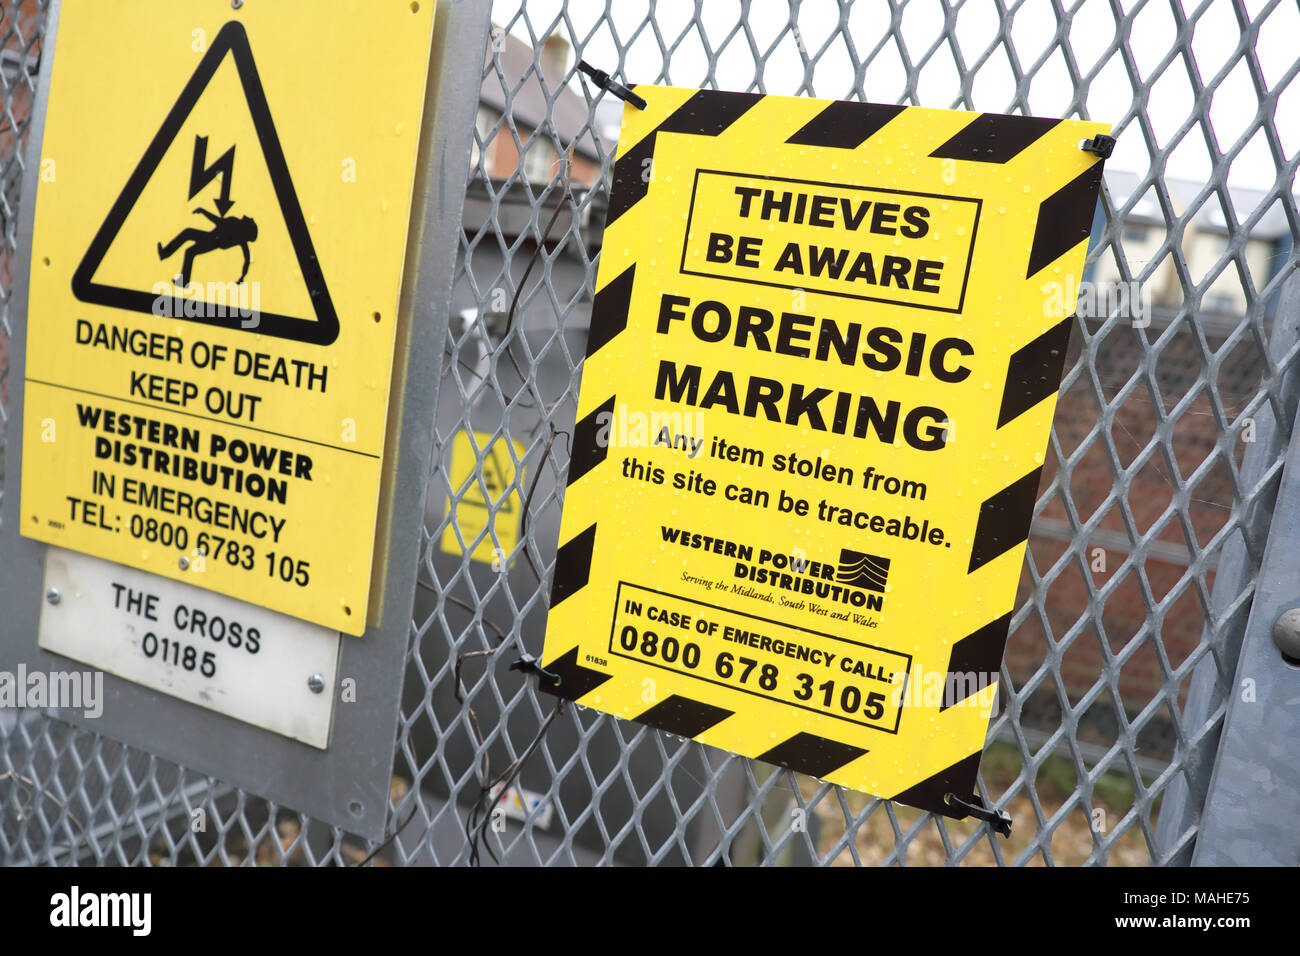 Property Thieves Be Aware warning sign Forensic Marking protection UK - Stock Image